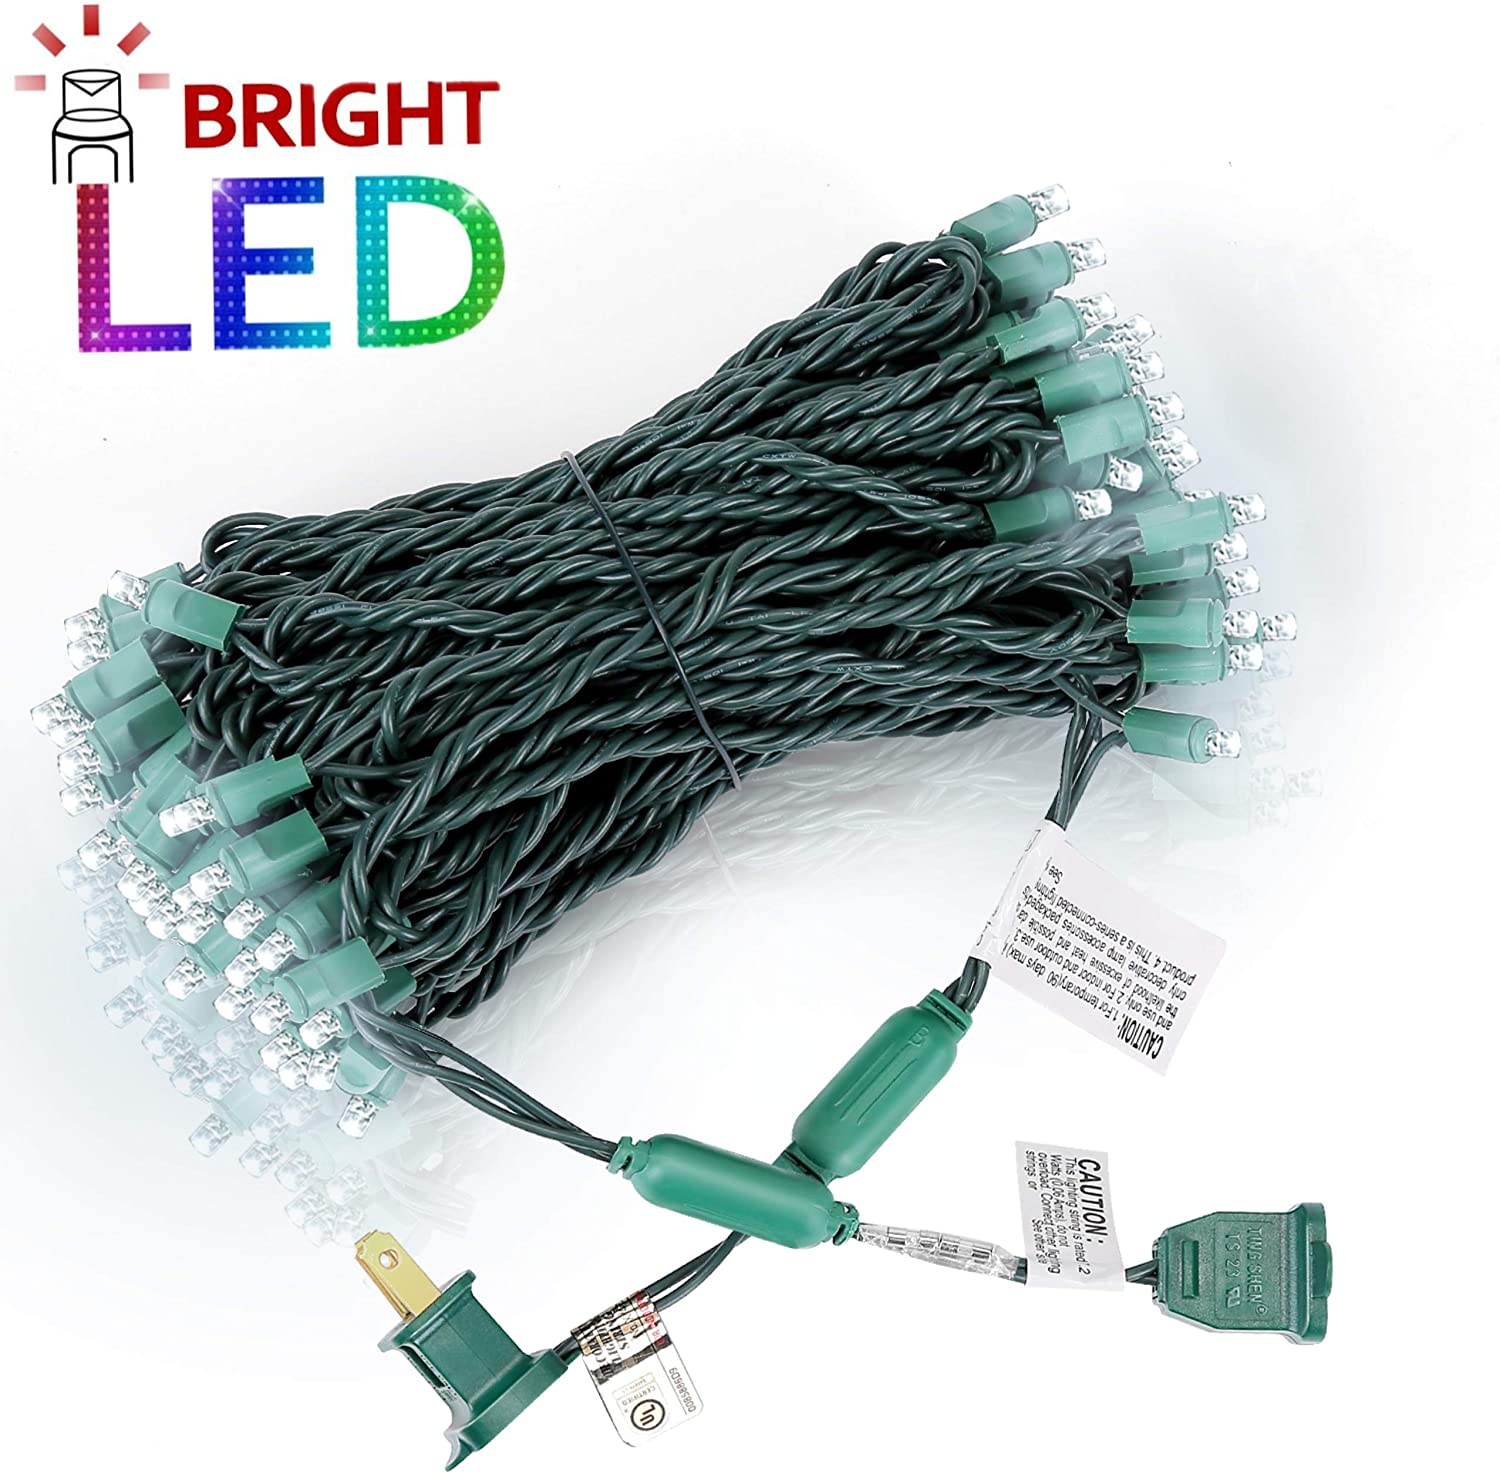 AIDDOMM LED Christmas Lights 100 Counts, for Outdoor and Indoor, Commercial Grade, Cool White Light, Green Wire, 50ft, UL Listed